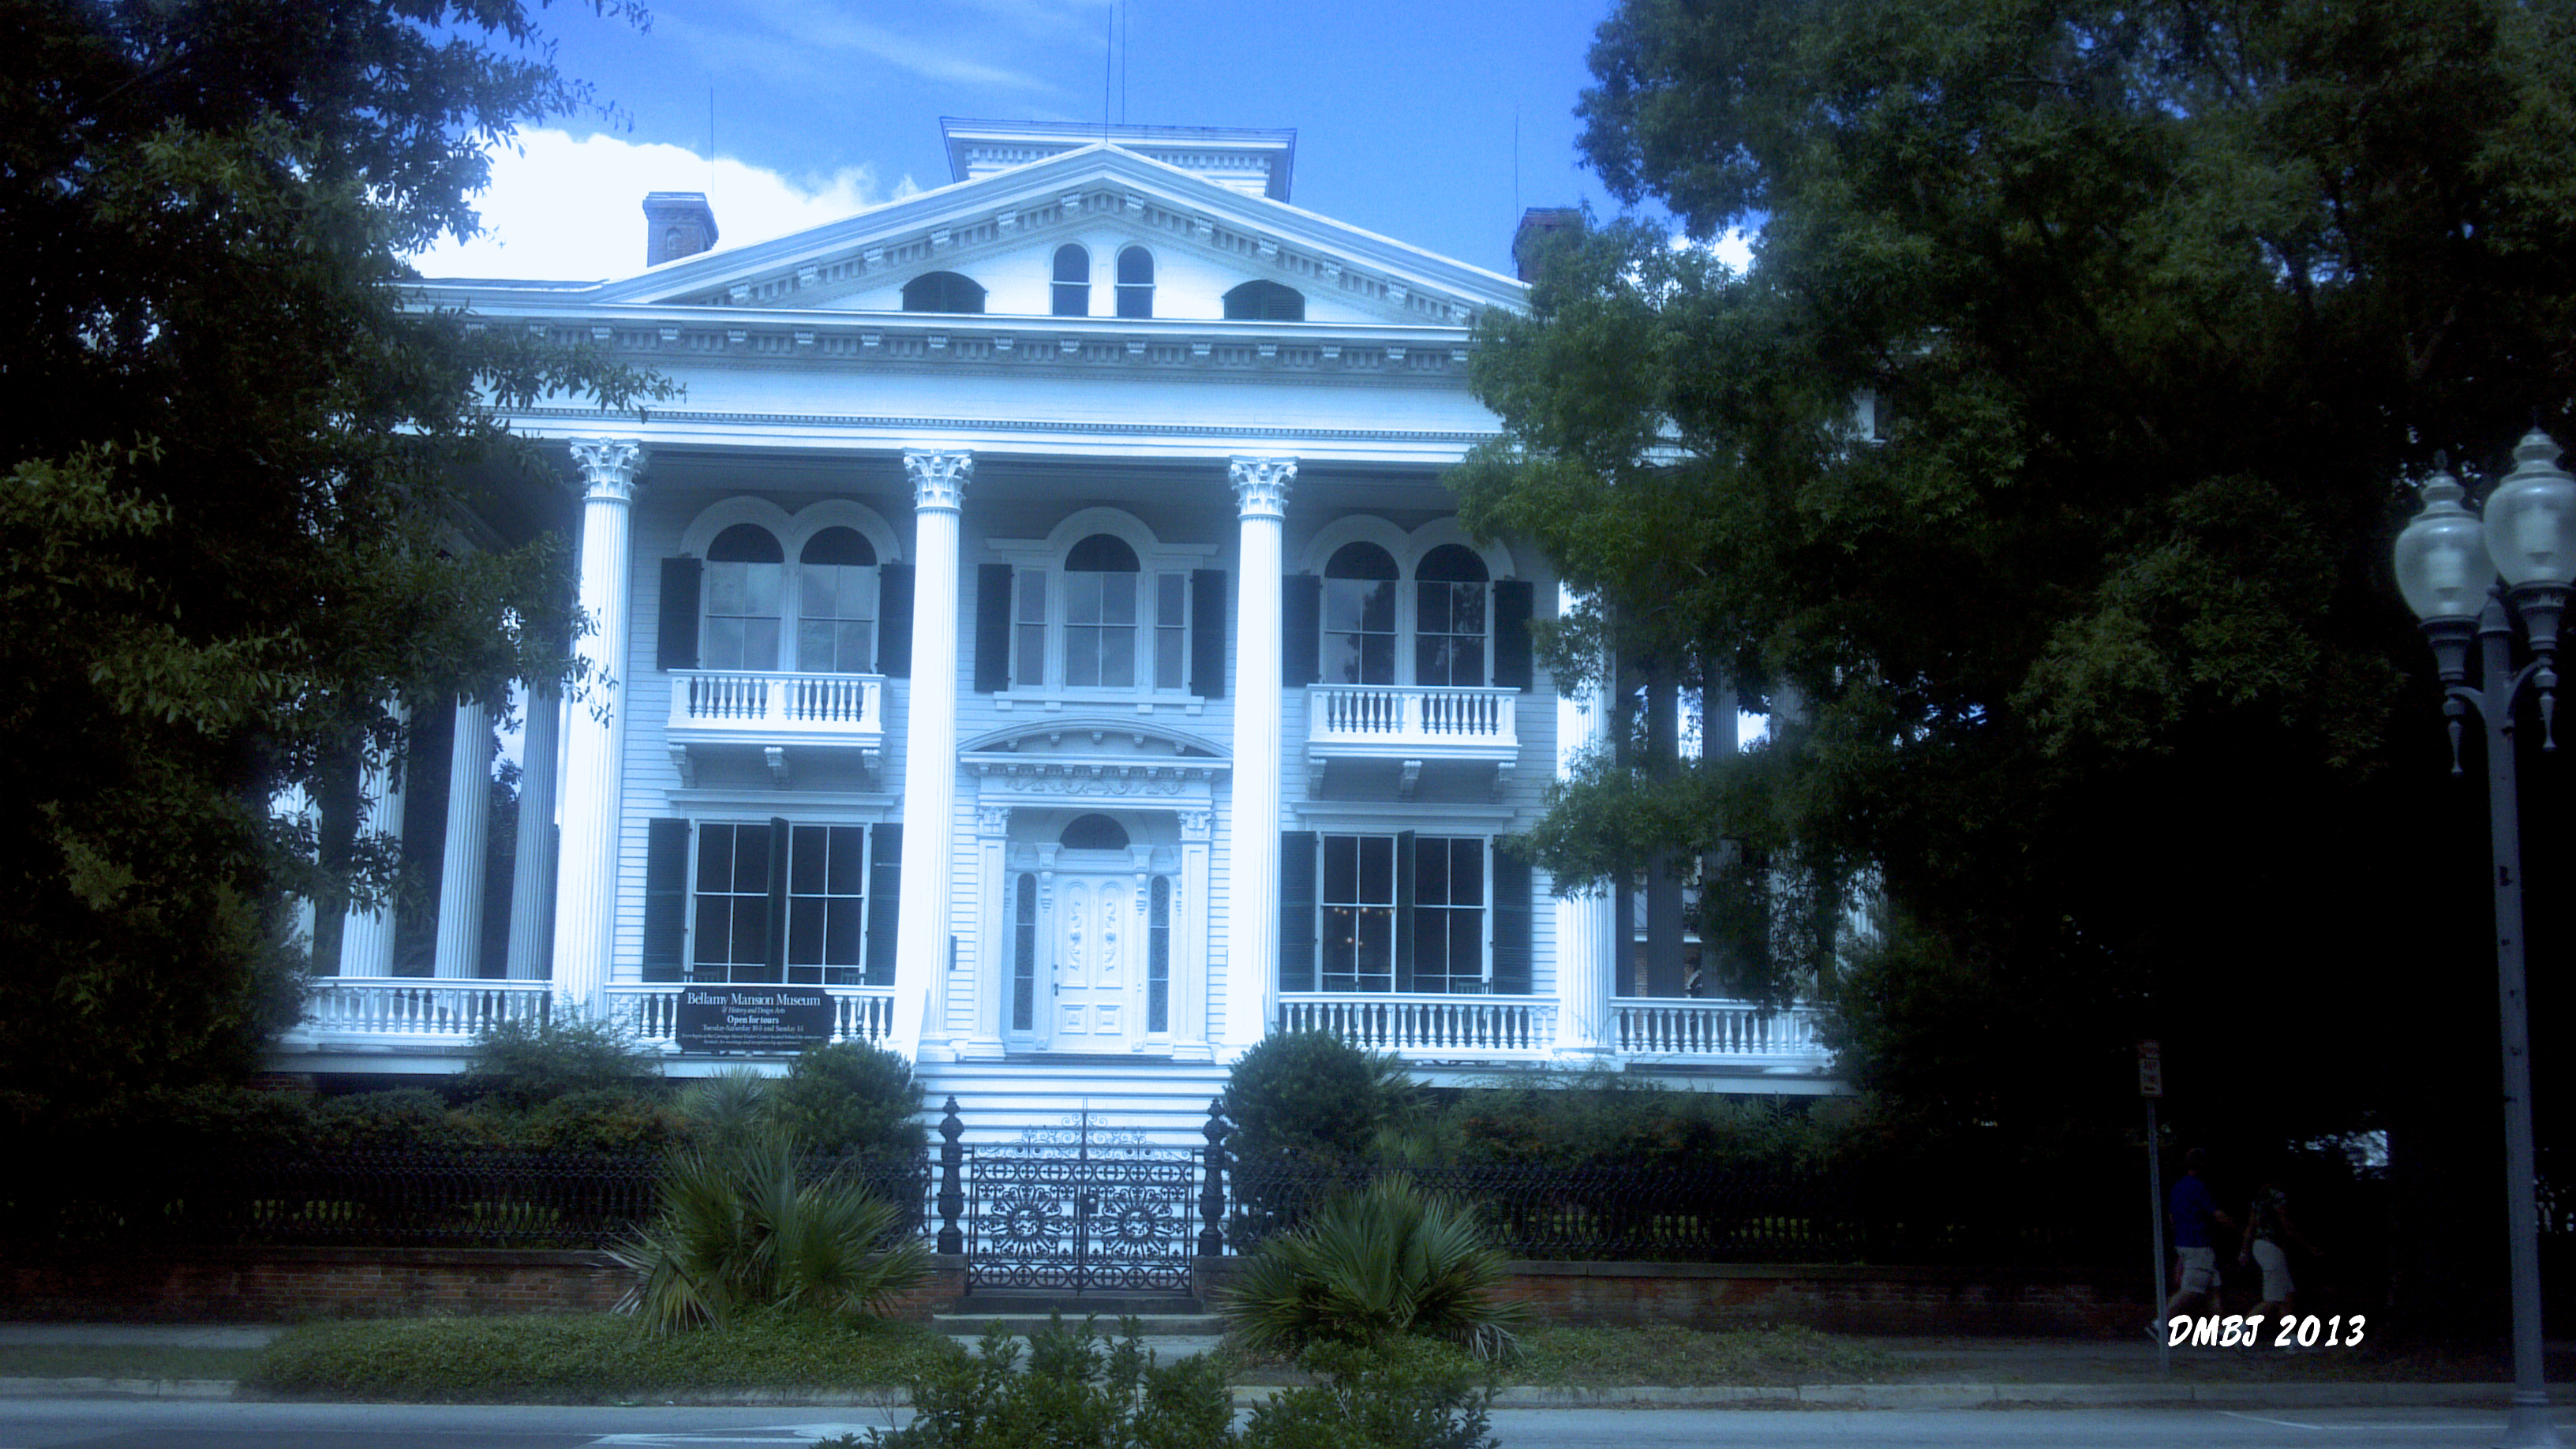 THE BELLAMY MANSION MUSEUM, WILMINGTON, N.C. (PHOTO BY PASTOR DAVIS)